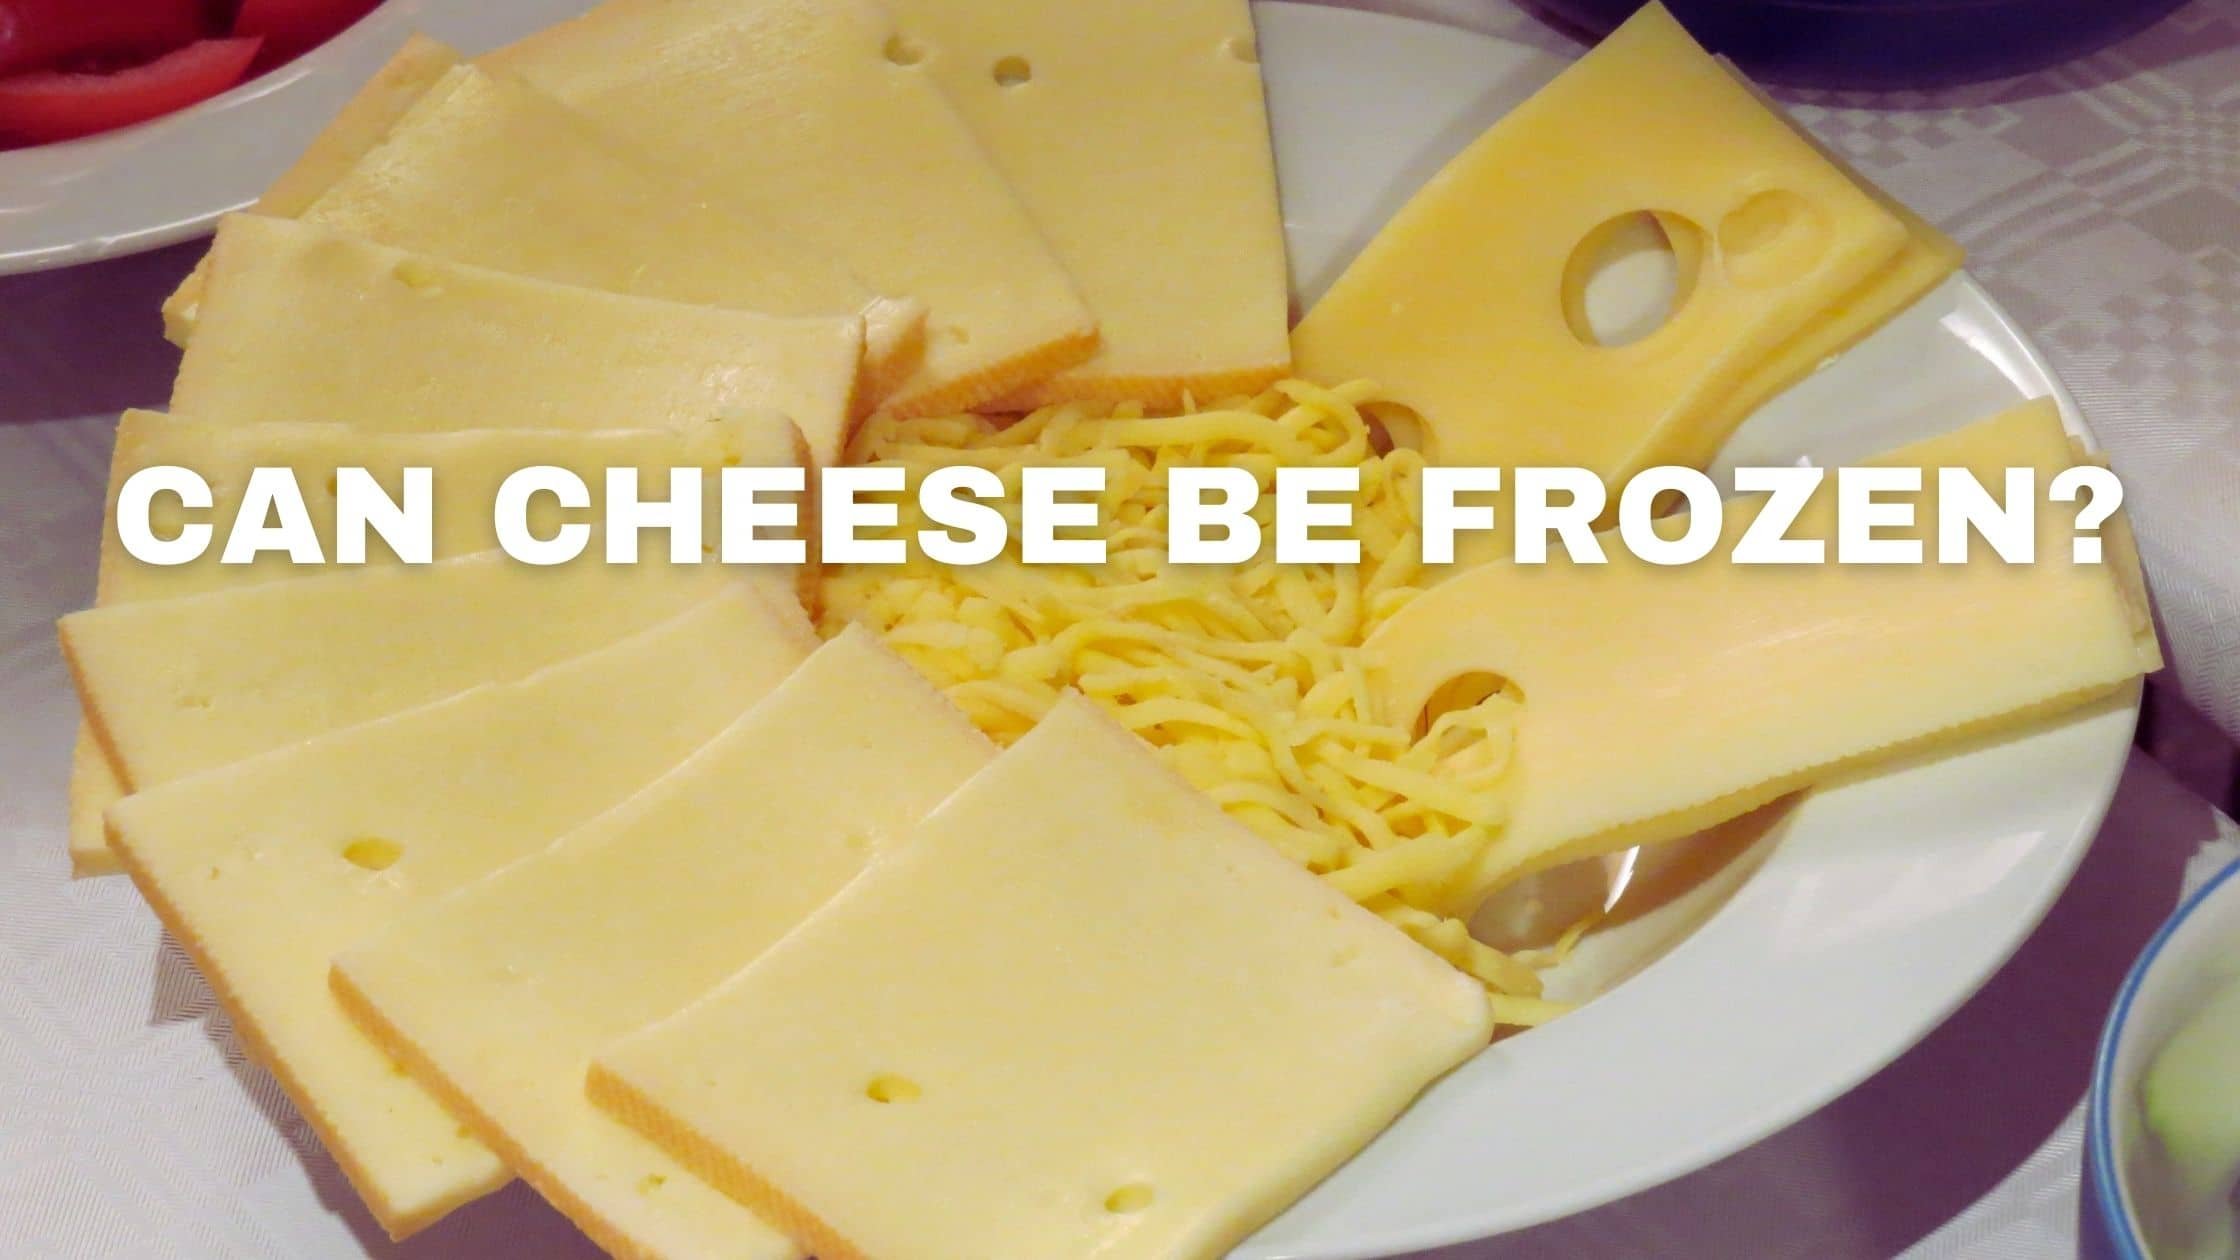 Can Cheese be Frozen?